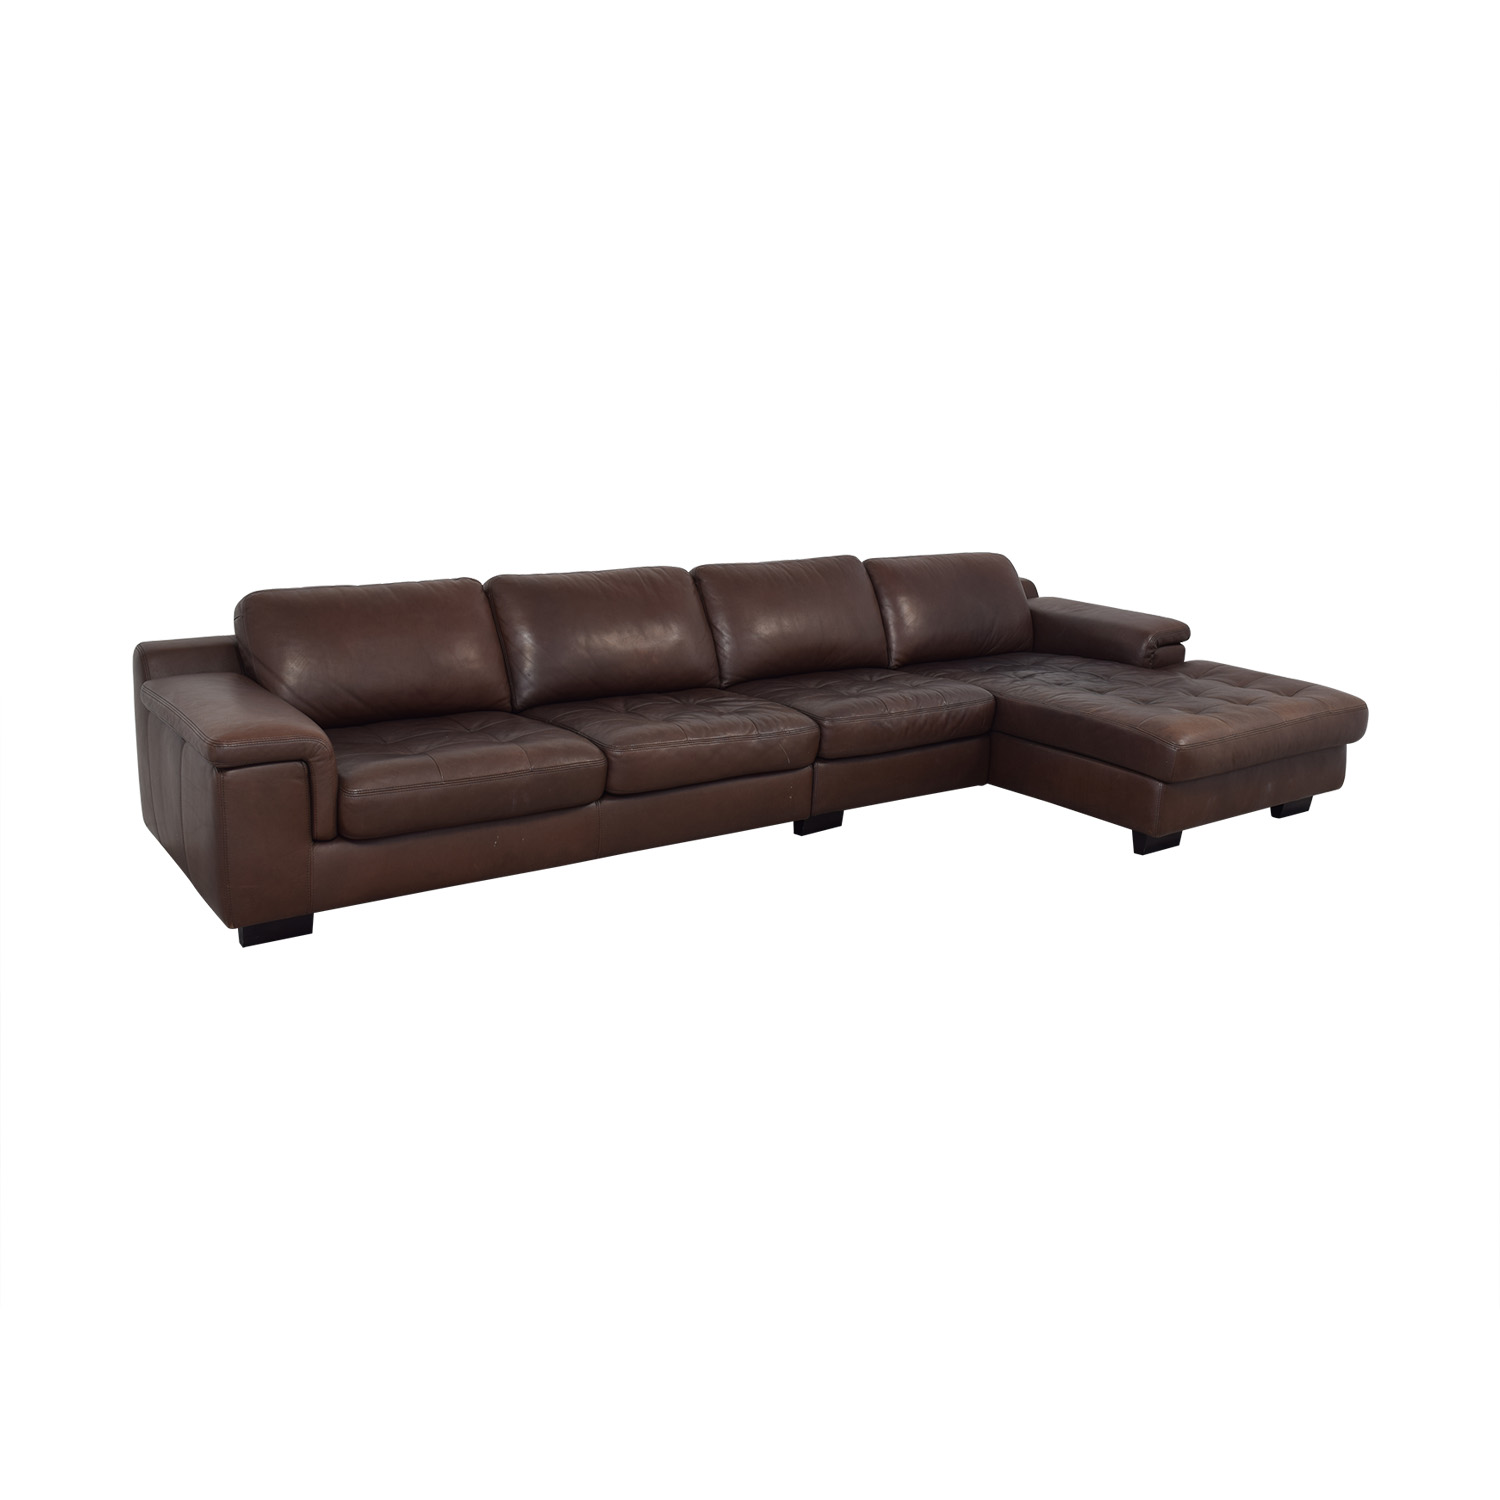 W. Schillig Tufted Sectional / Sofas